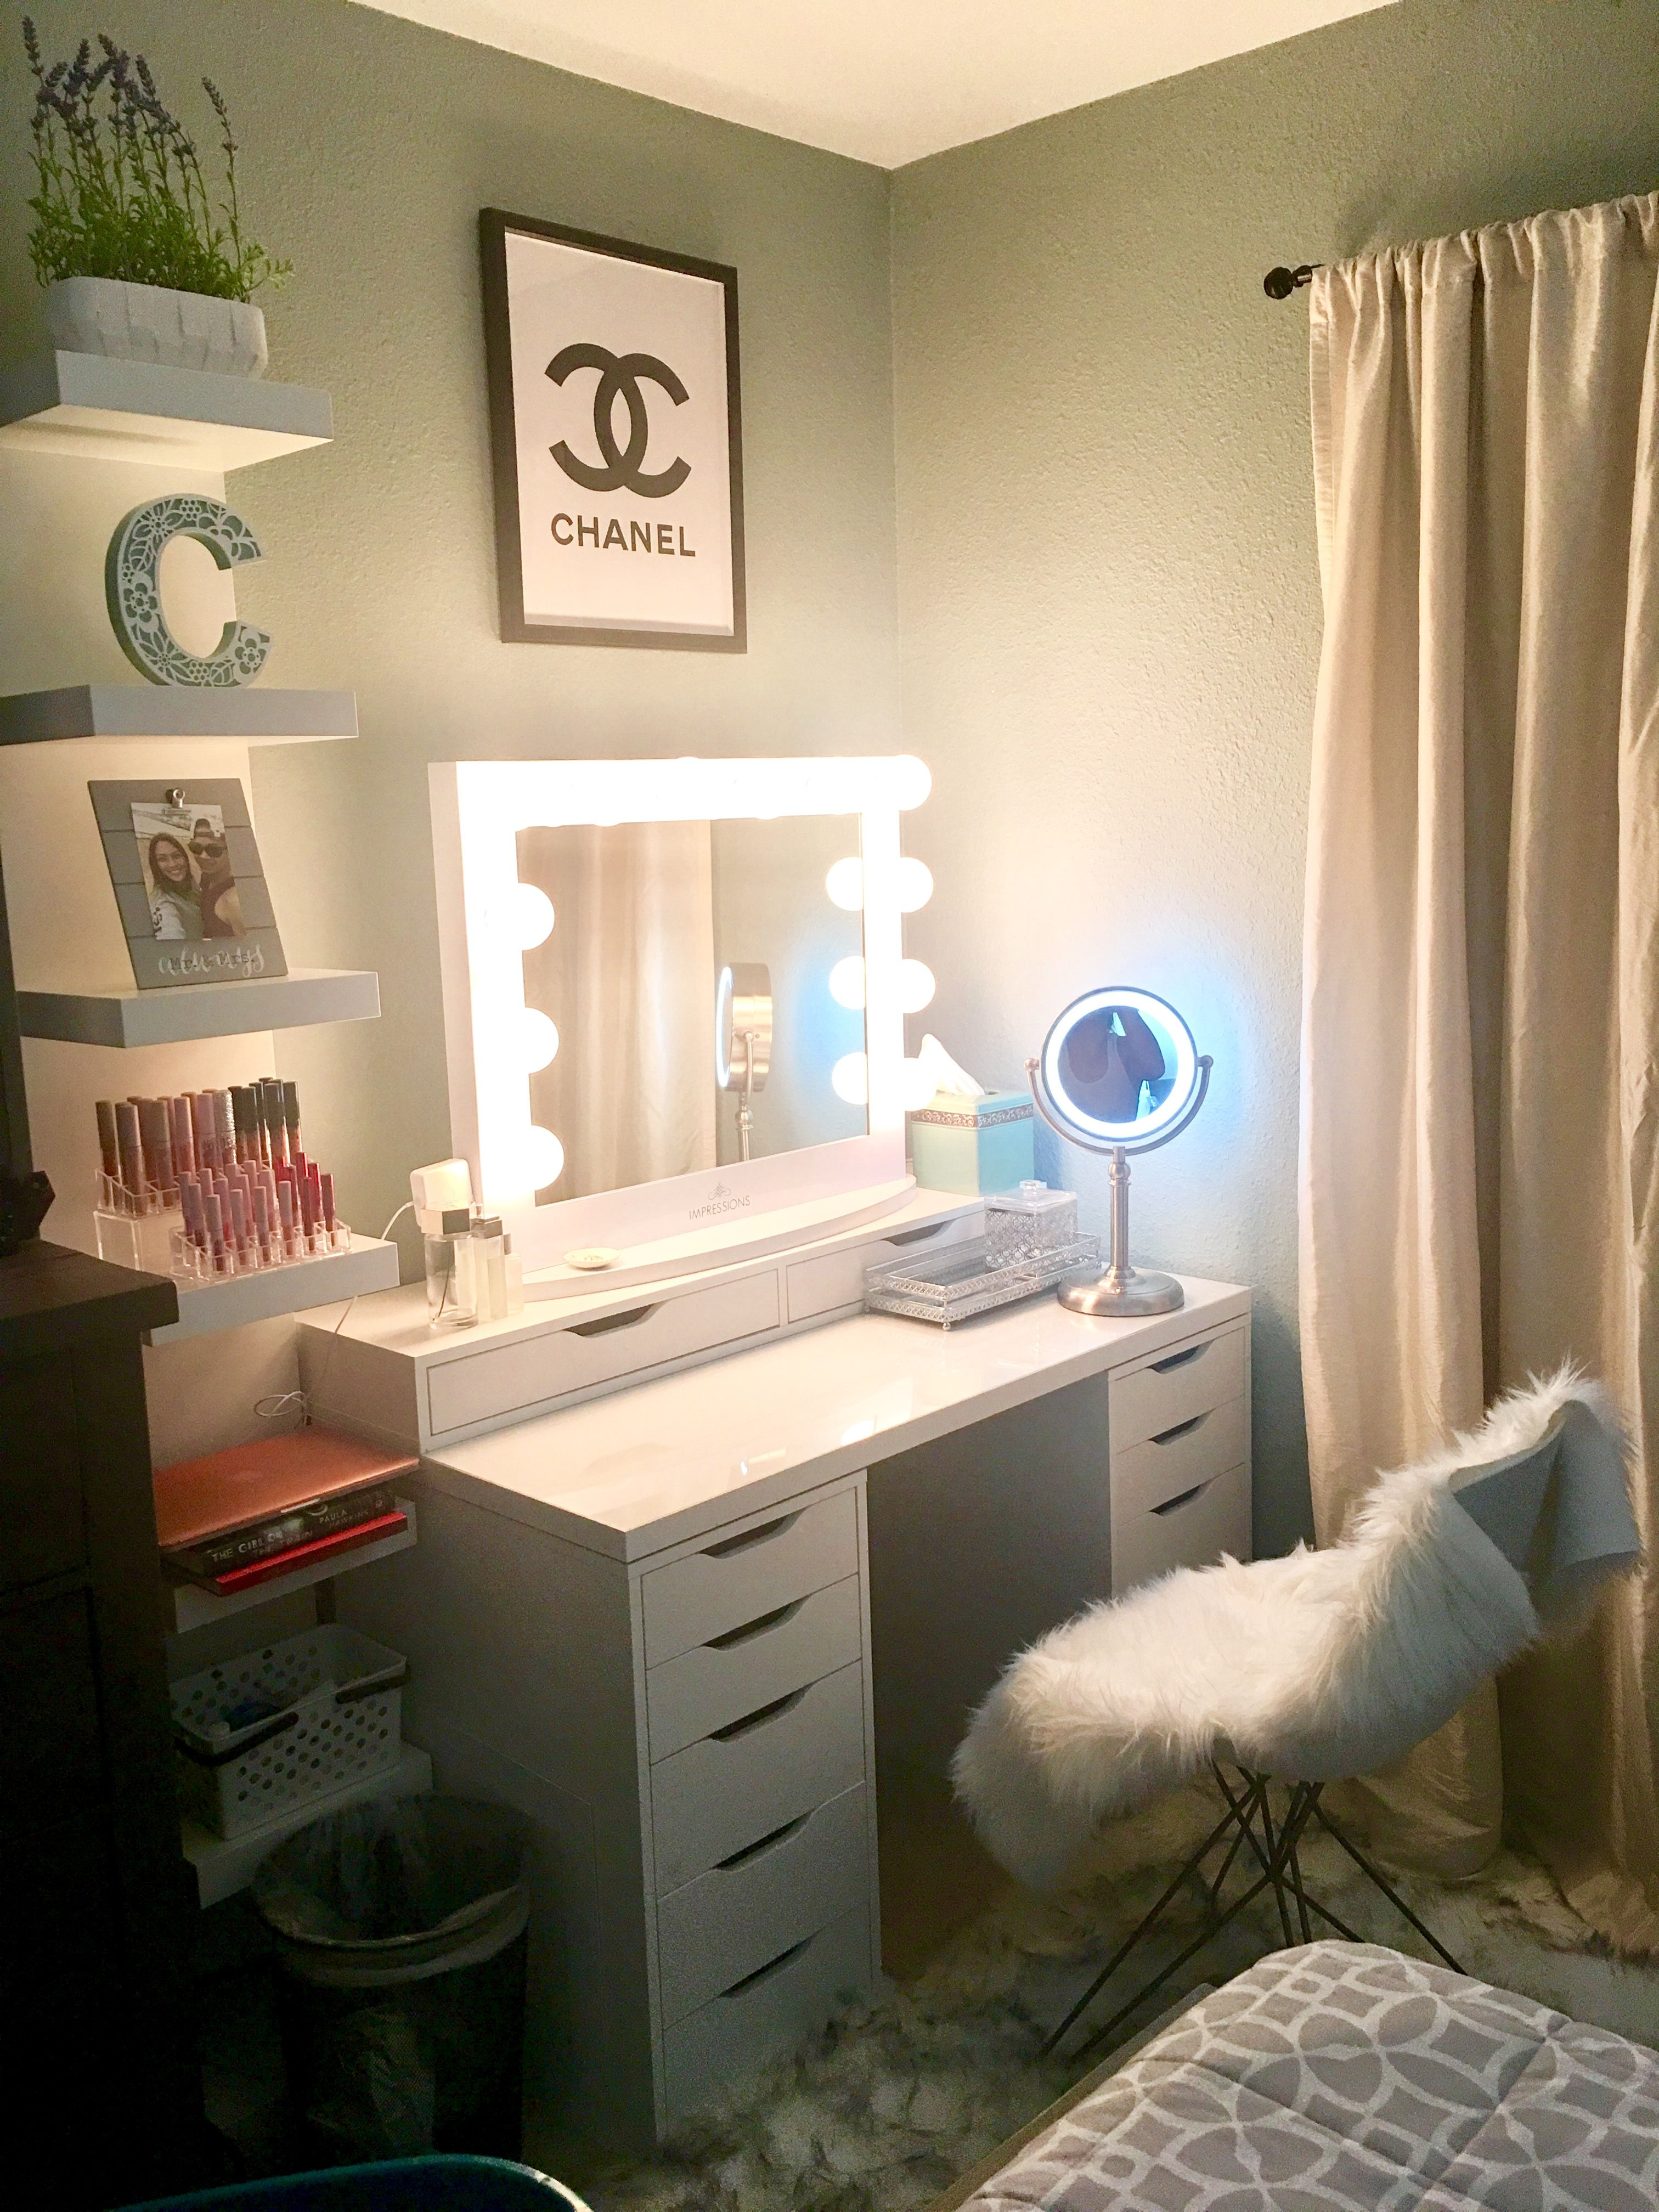 Impressions Vanity Mirror Ikea Alex Drawers Hollywood Style Chanel Diy Frame Lighted Makeup Organization Slay Station